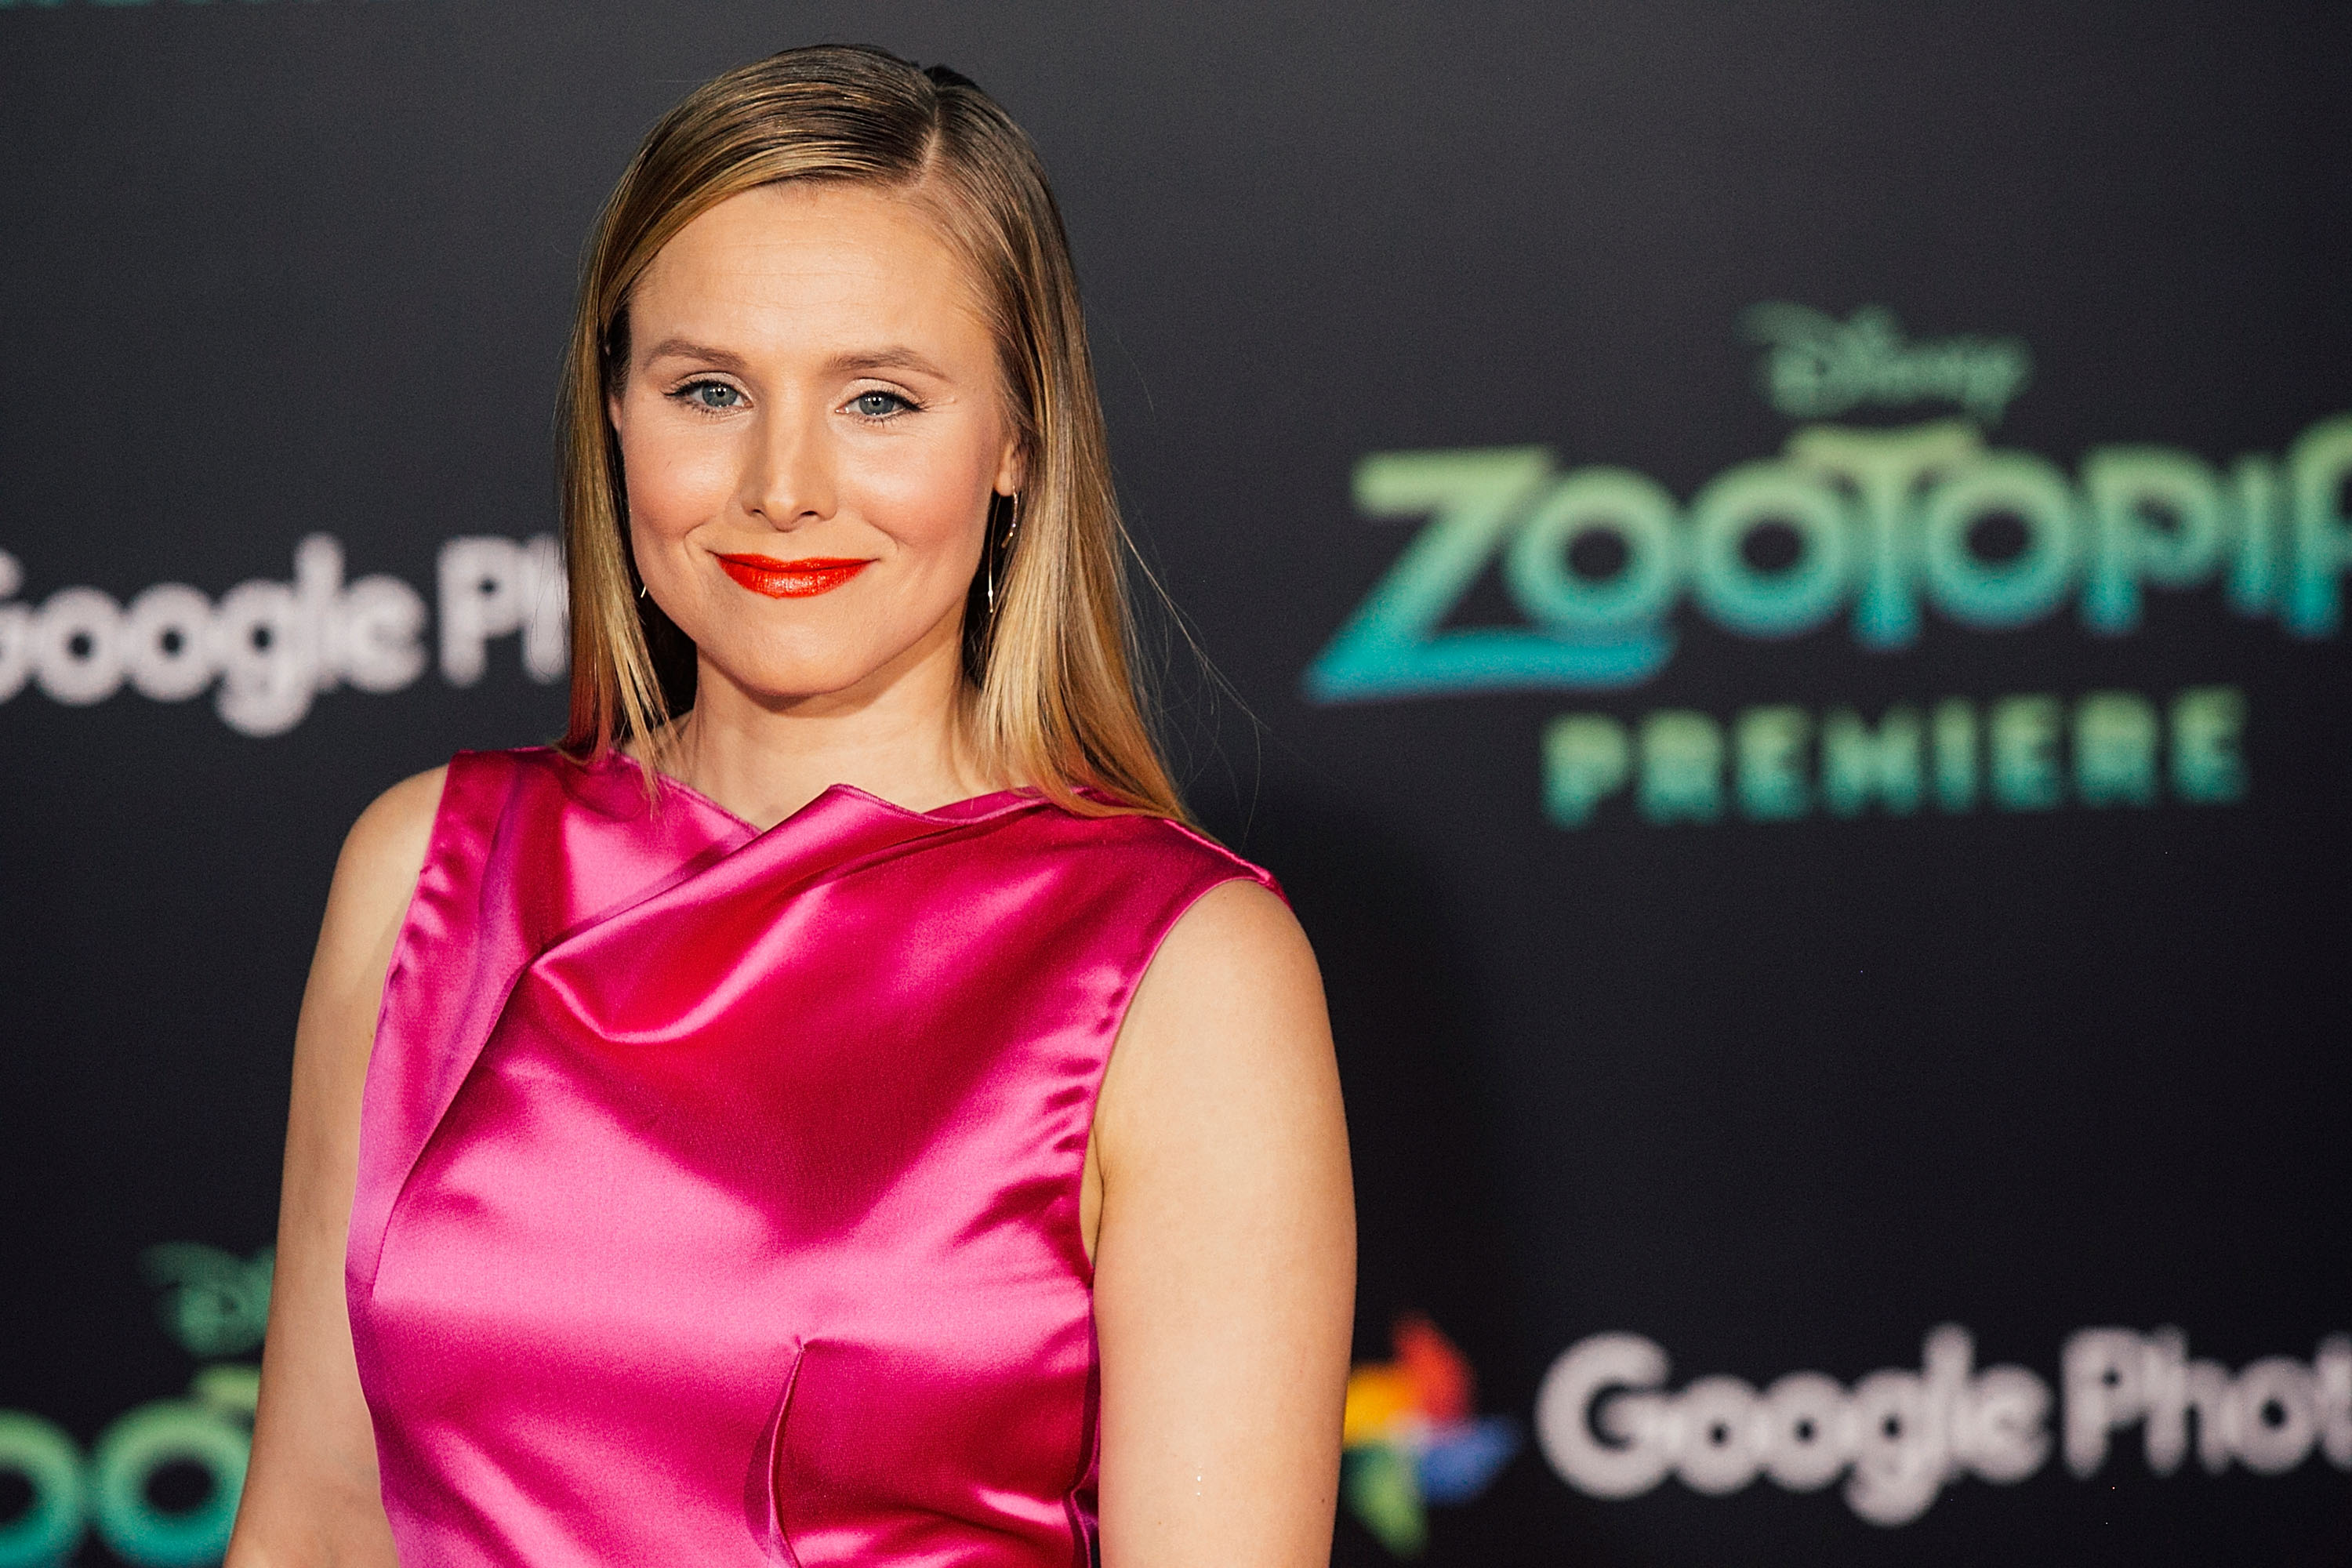 Kristen Bell arrives for the premiere of Walt Disney Animation Studios'  Zootopia  at the El Capitan Theatre on February 17, 2016 in Hollywood, California.